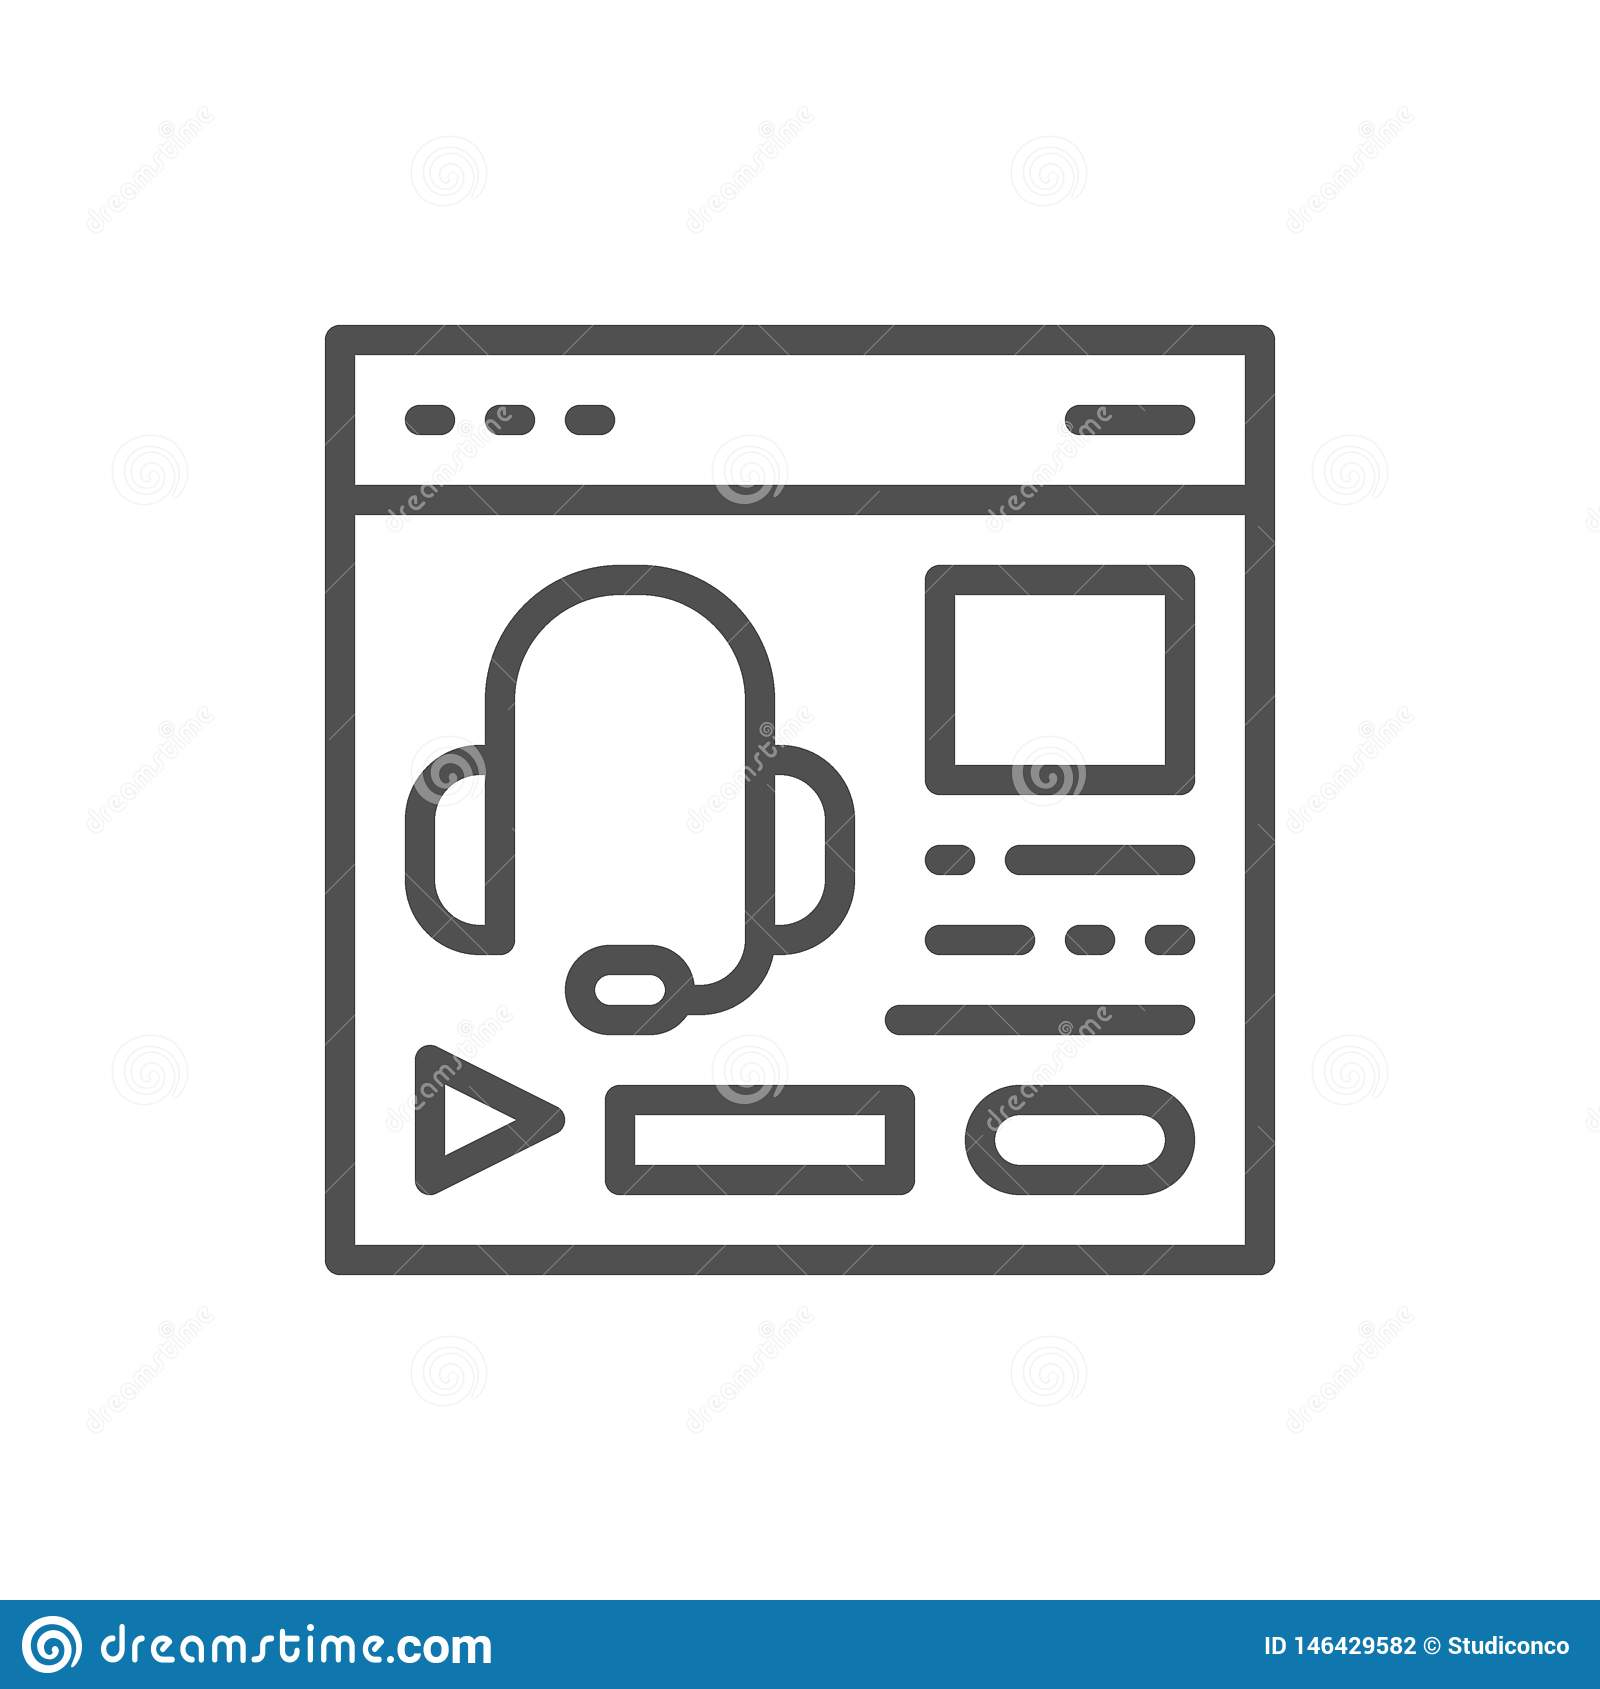 Audio course, podcast, education website, web page line icon.